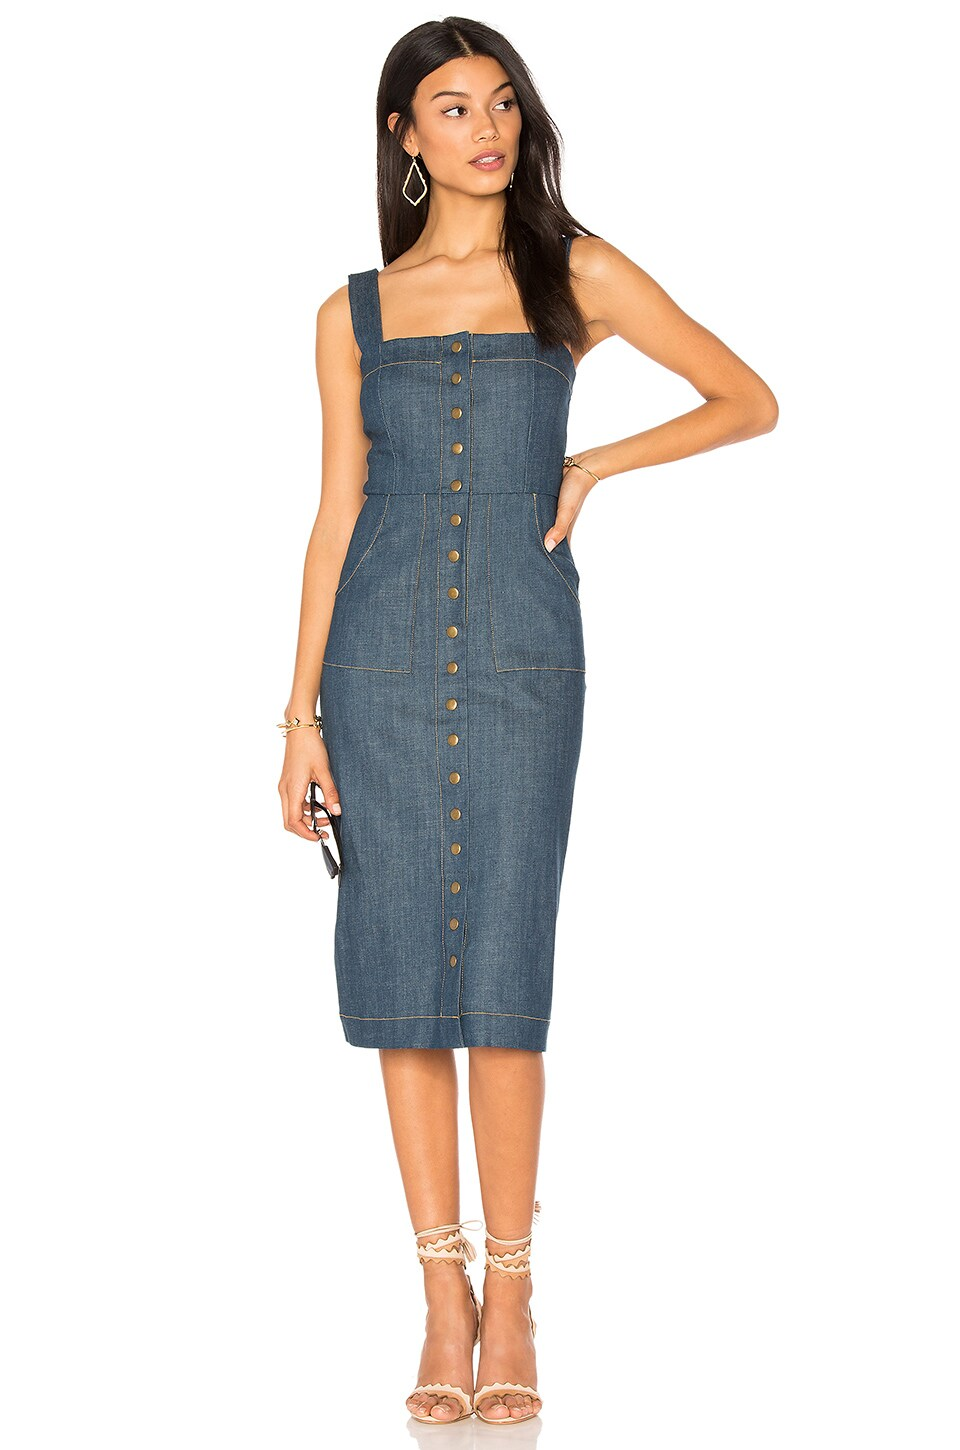 Clayton Marina Denim Candace Dress in Marina Denim